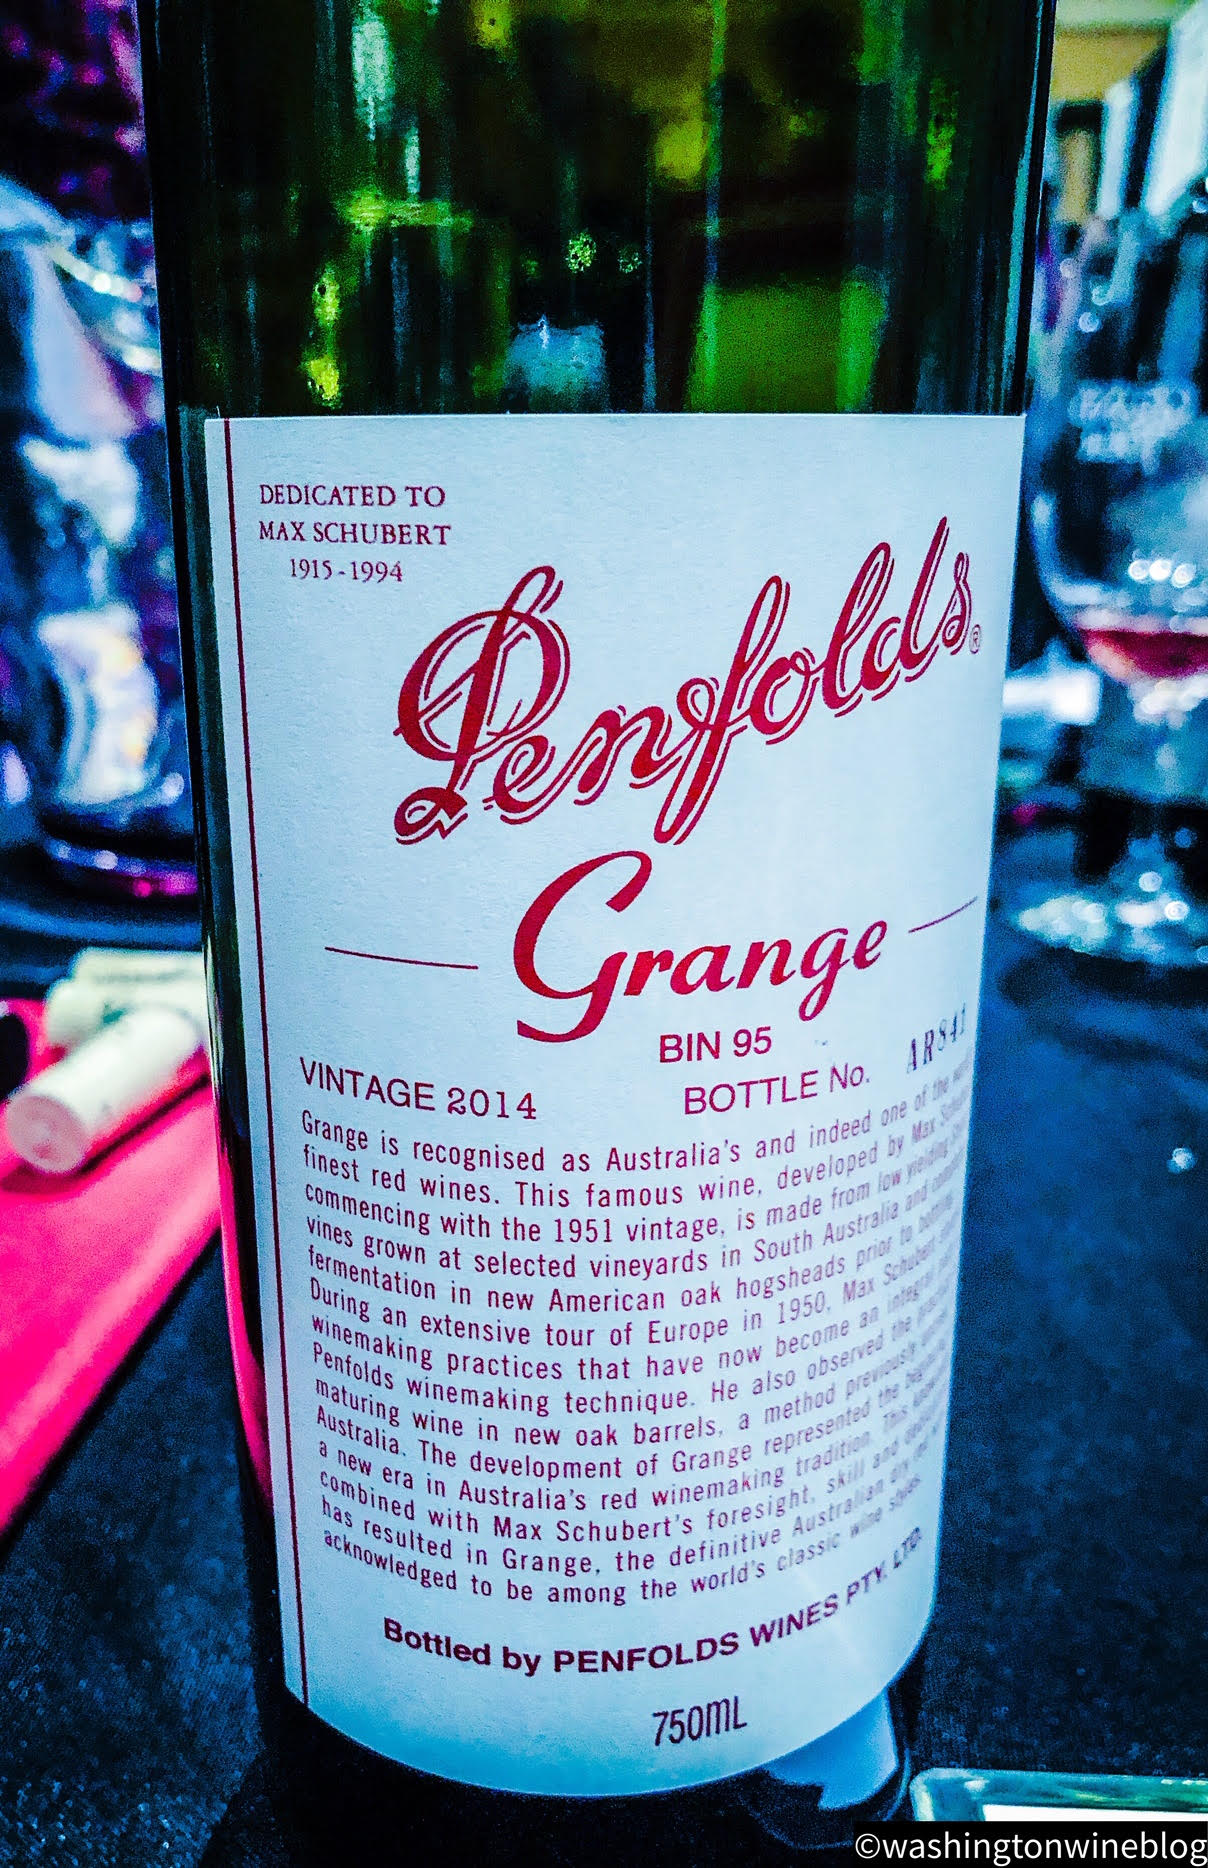 The 2014 Penfolds 'Grange' Shiraz (WWB, 98) is one of the iconic wines of the world.